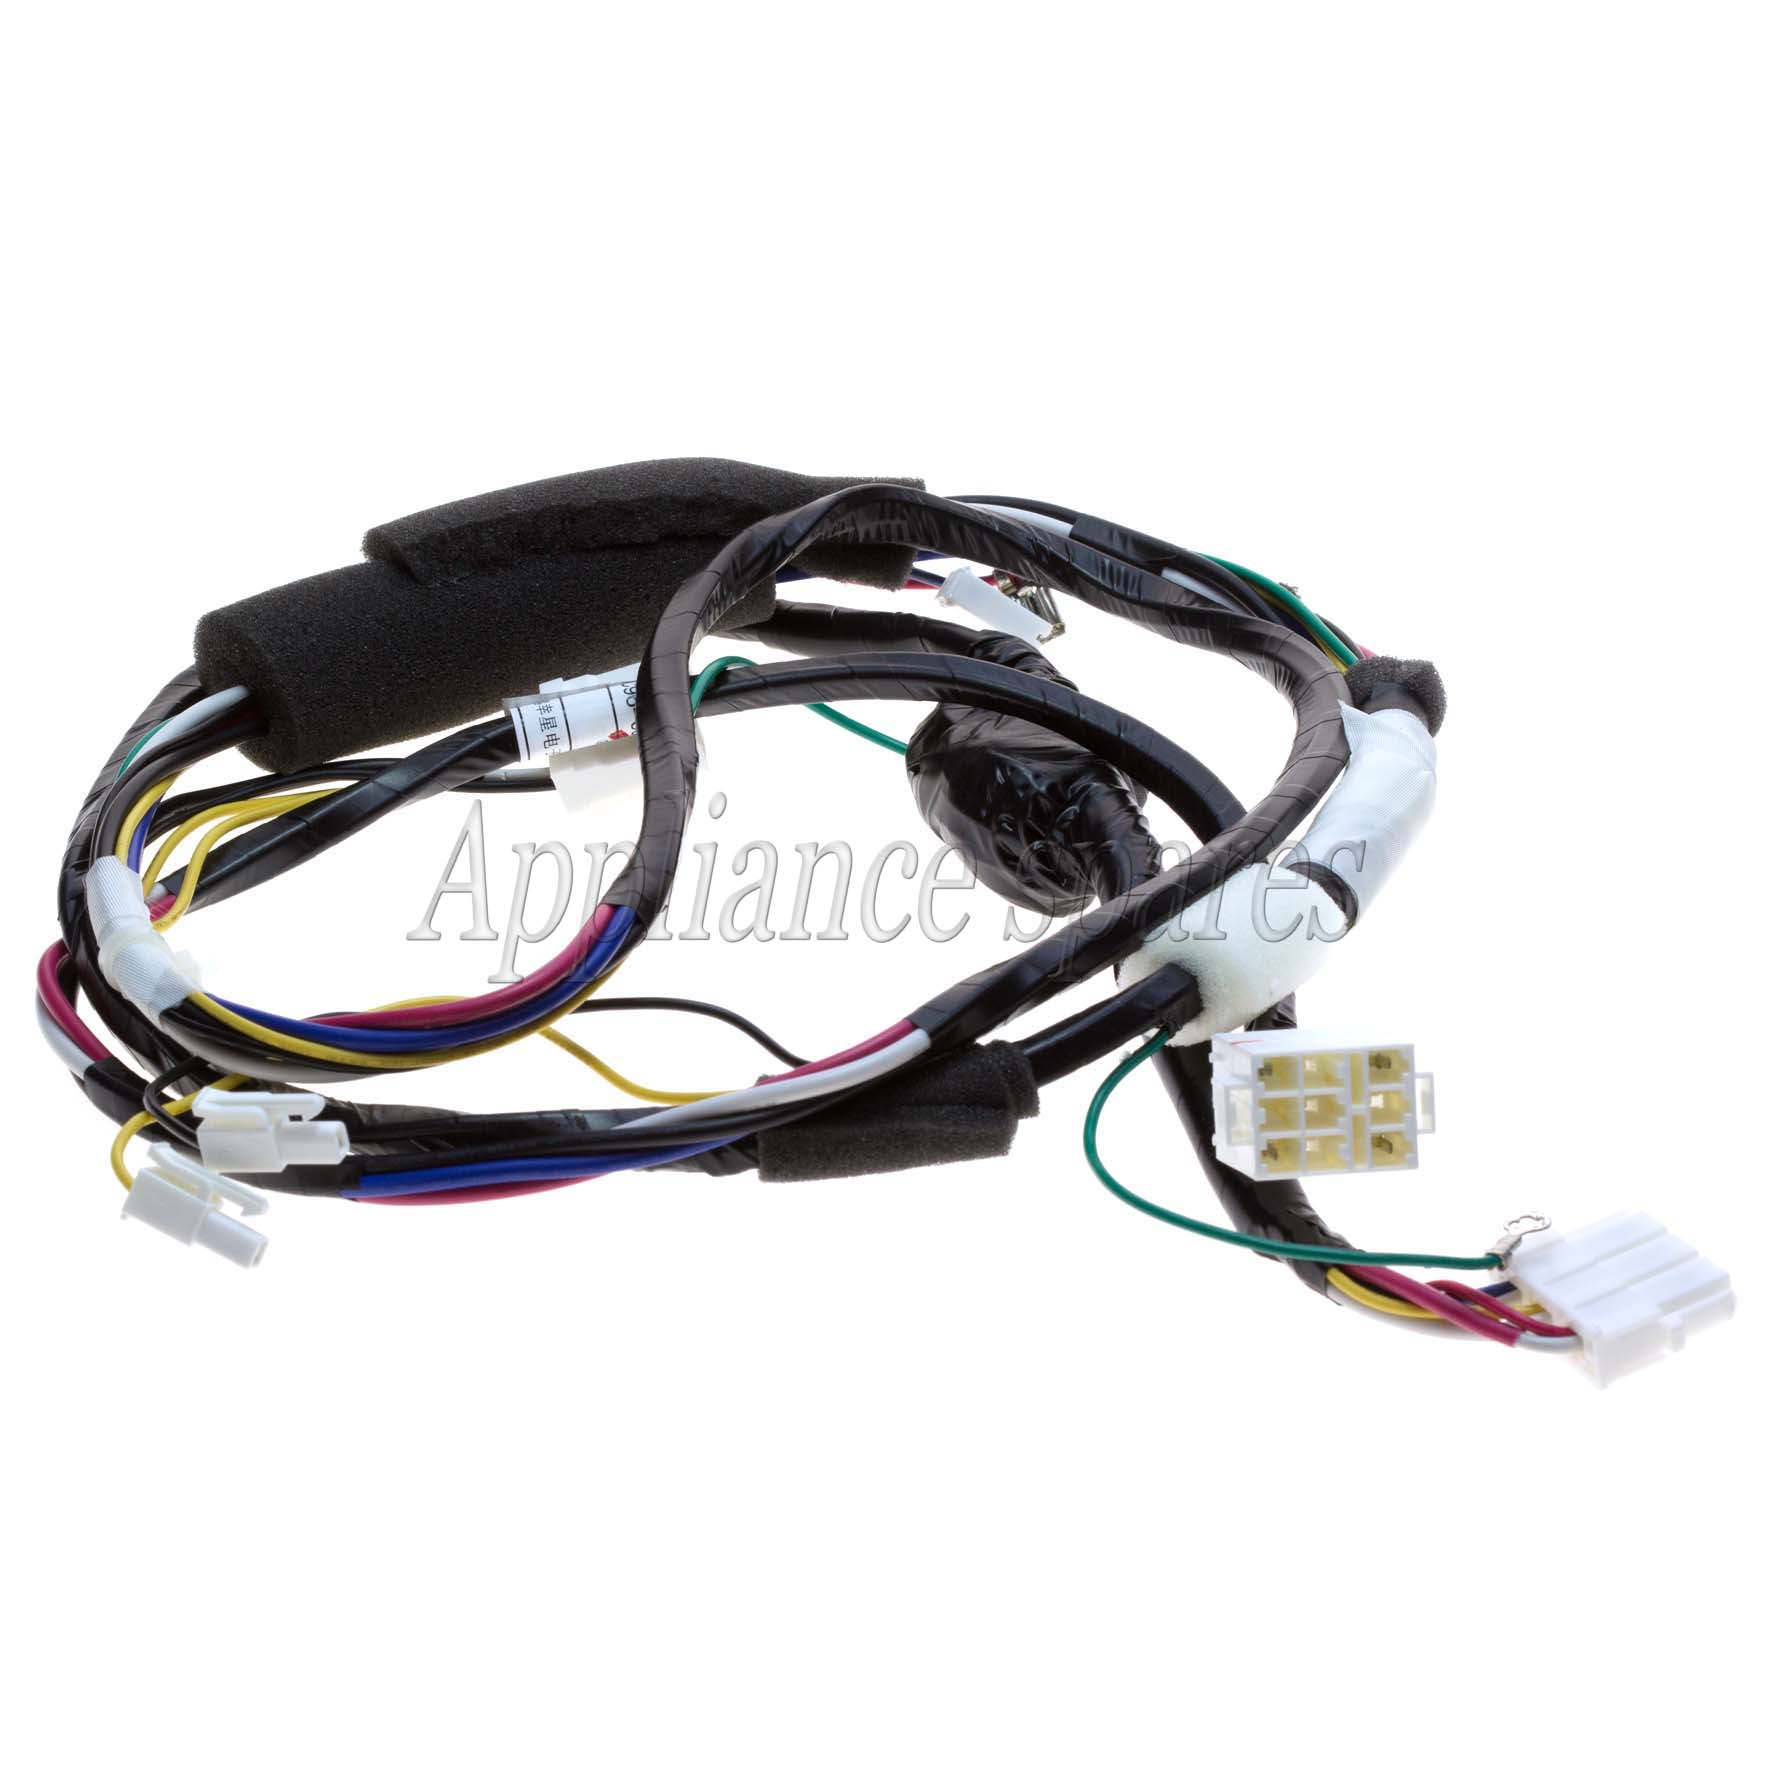 Samsung Top Loader Washing Machine Wiring Harness Lategan And Van Wire Insulation